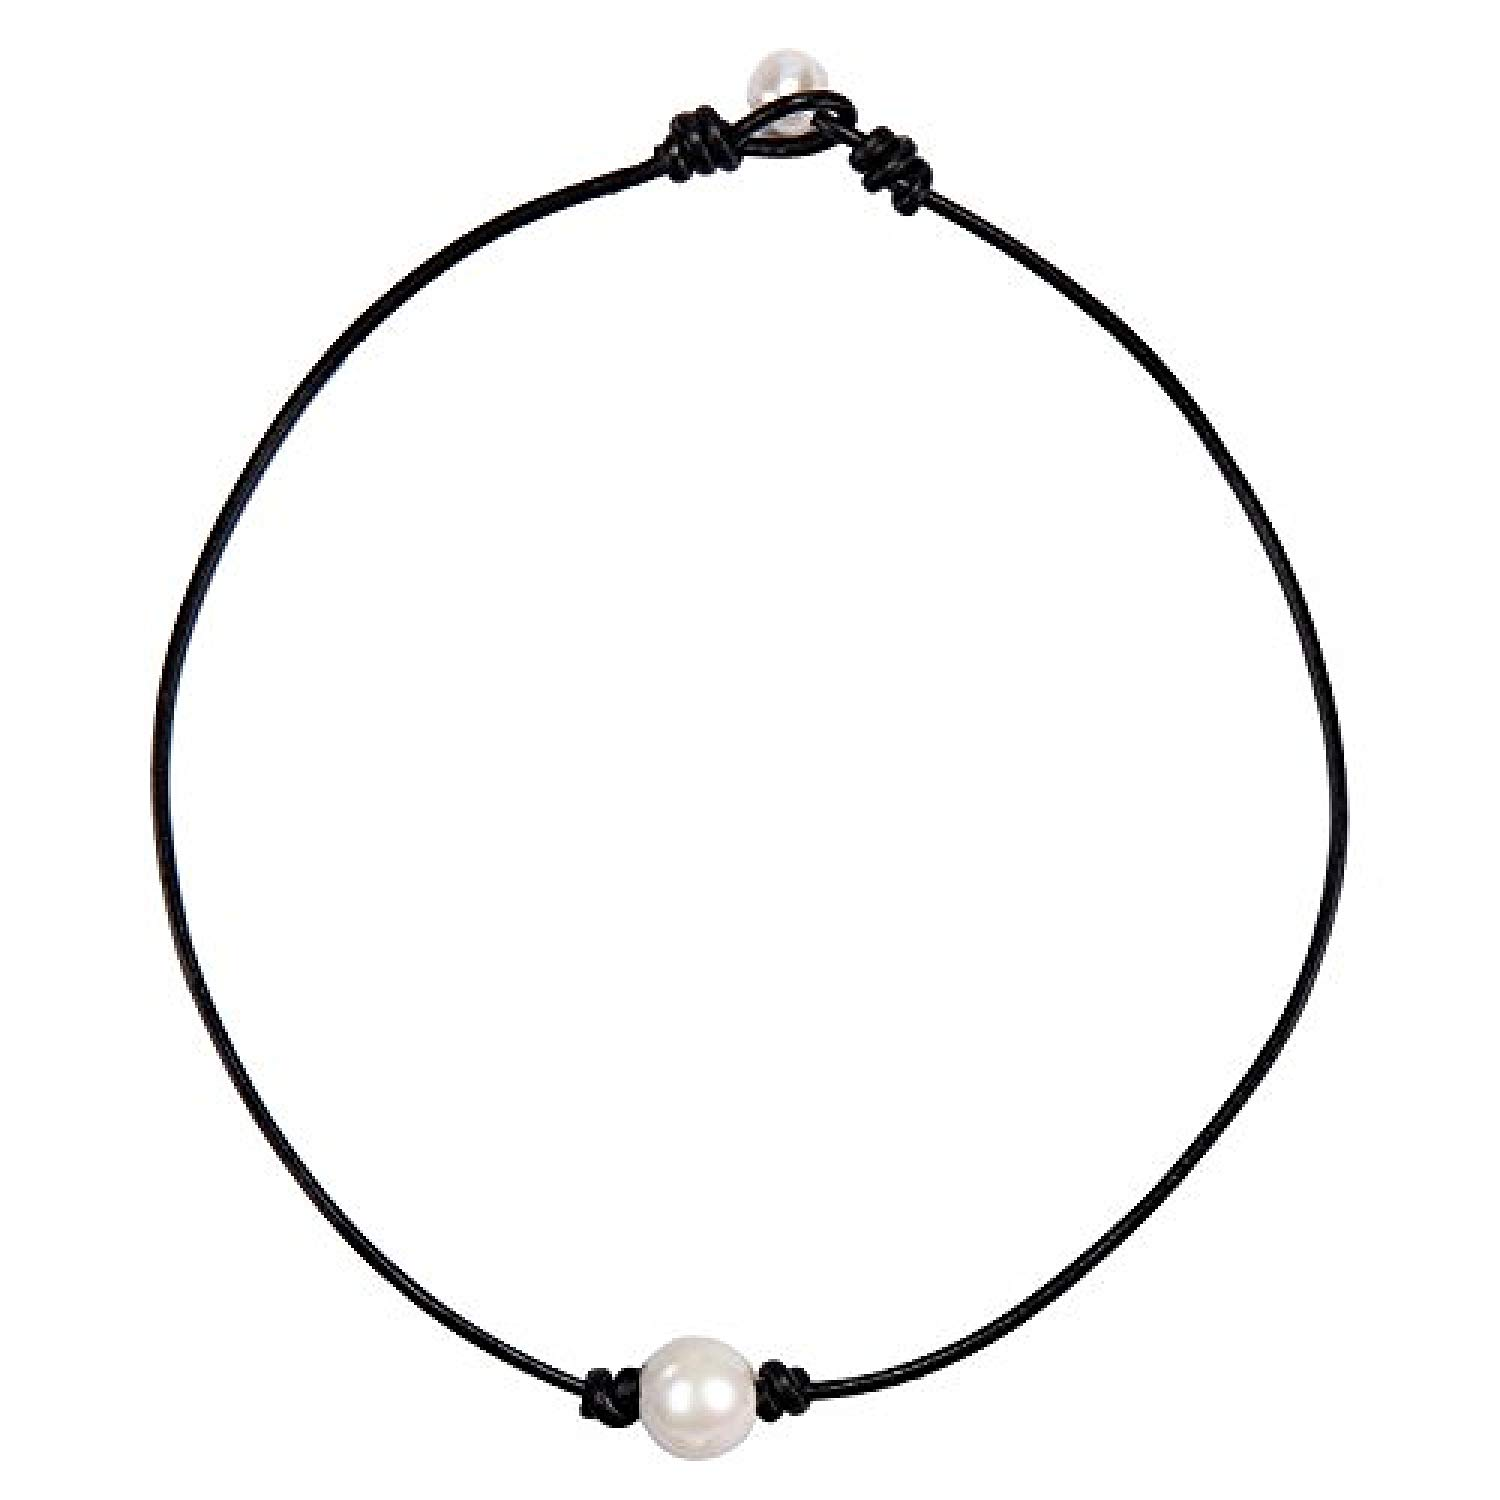 277b8cc4aab69 Cheap Leather Cord Choker, find Leather Cord Choker deals on line at ...